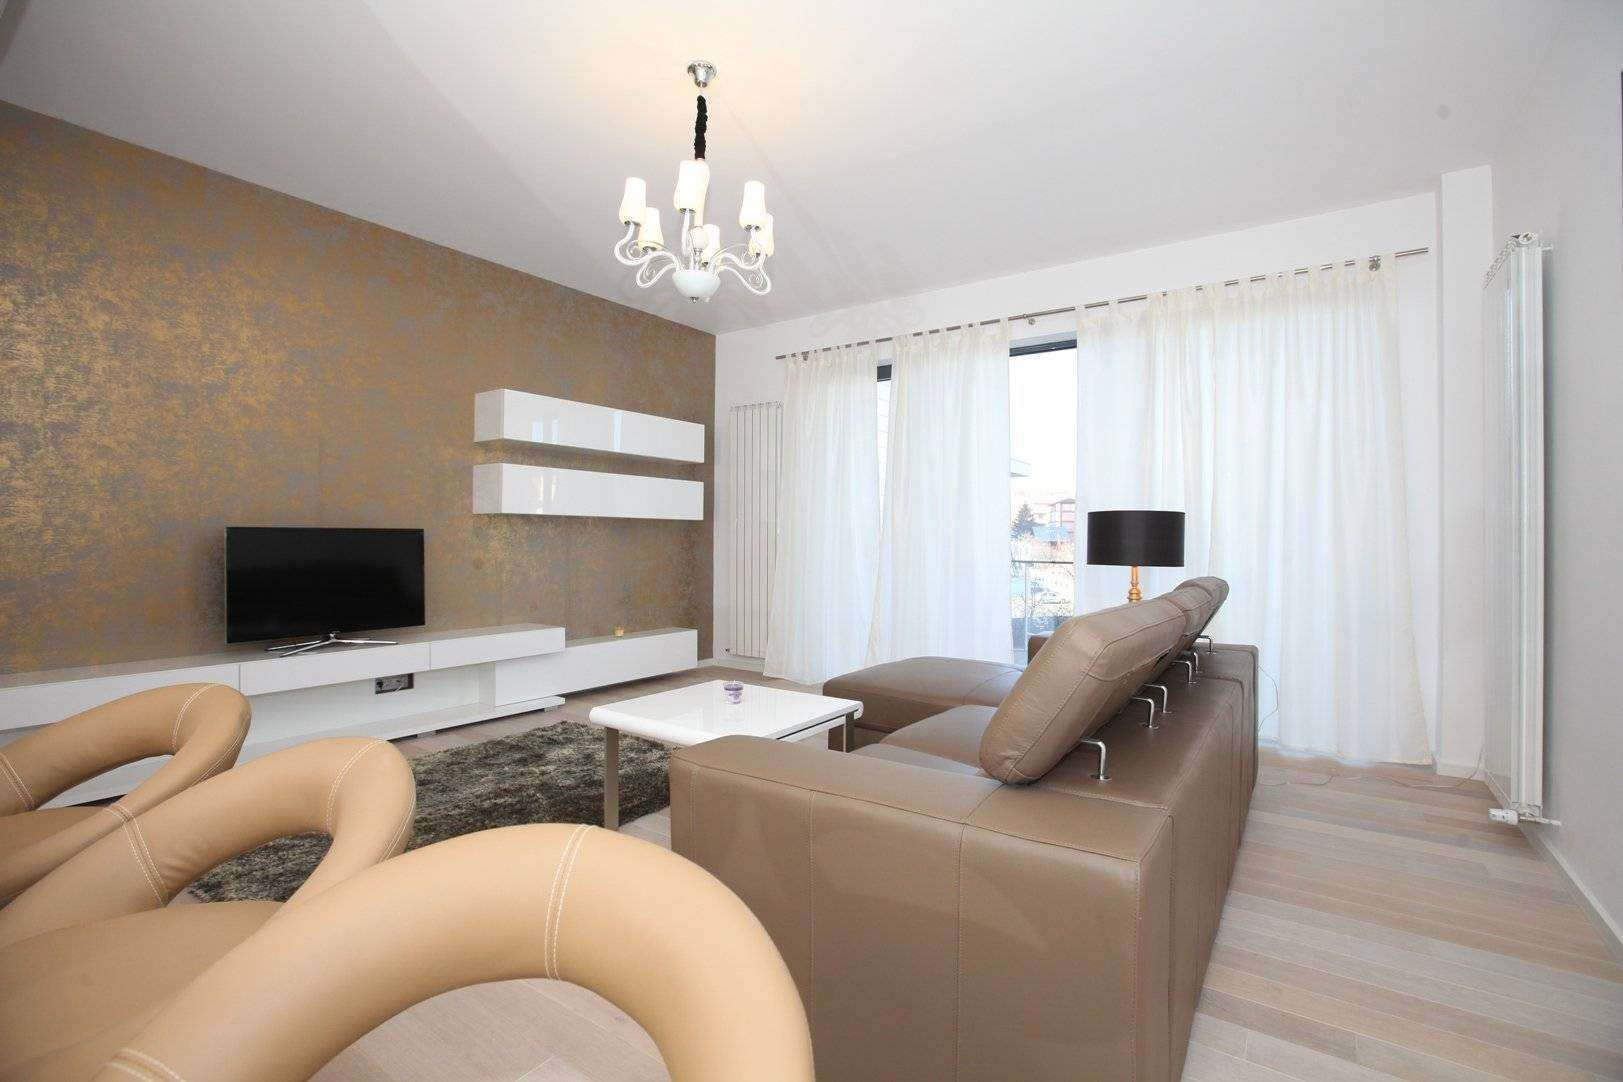 <a href=&quot;amenajare open space living cu bucatarie &quot;>amenajare open space living cu bucatarie<img src='http://www.unican.ro/wp-content/themes/vita/img/dreapta.png' class='pull-right hidden-xs' style='margin-right:-10px;margin-top:-10px; max-height:41px'></a>